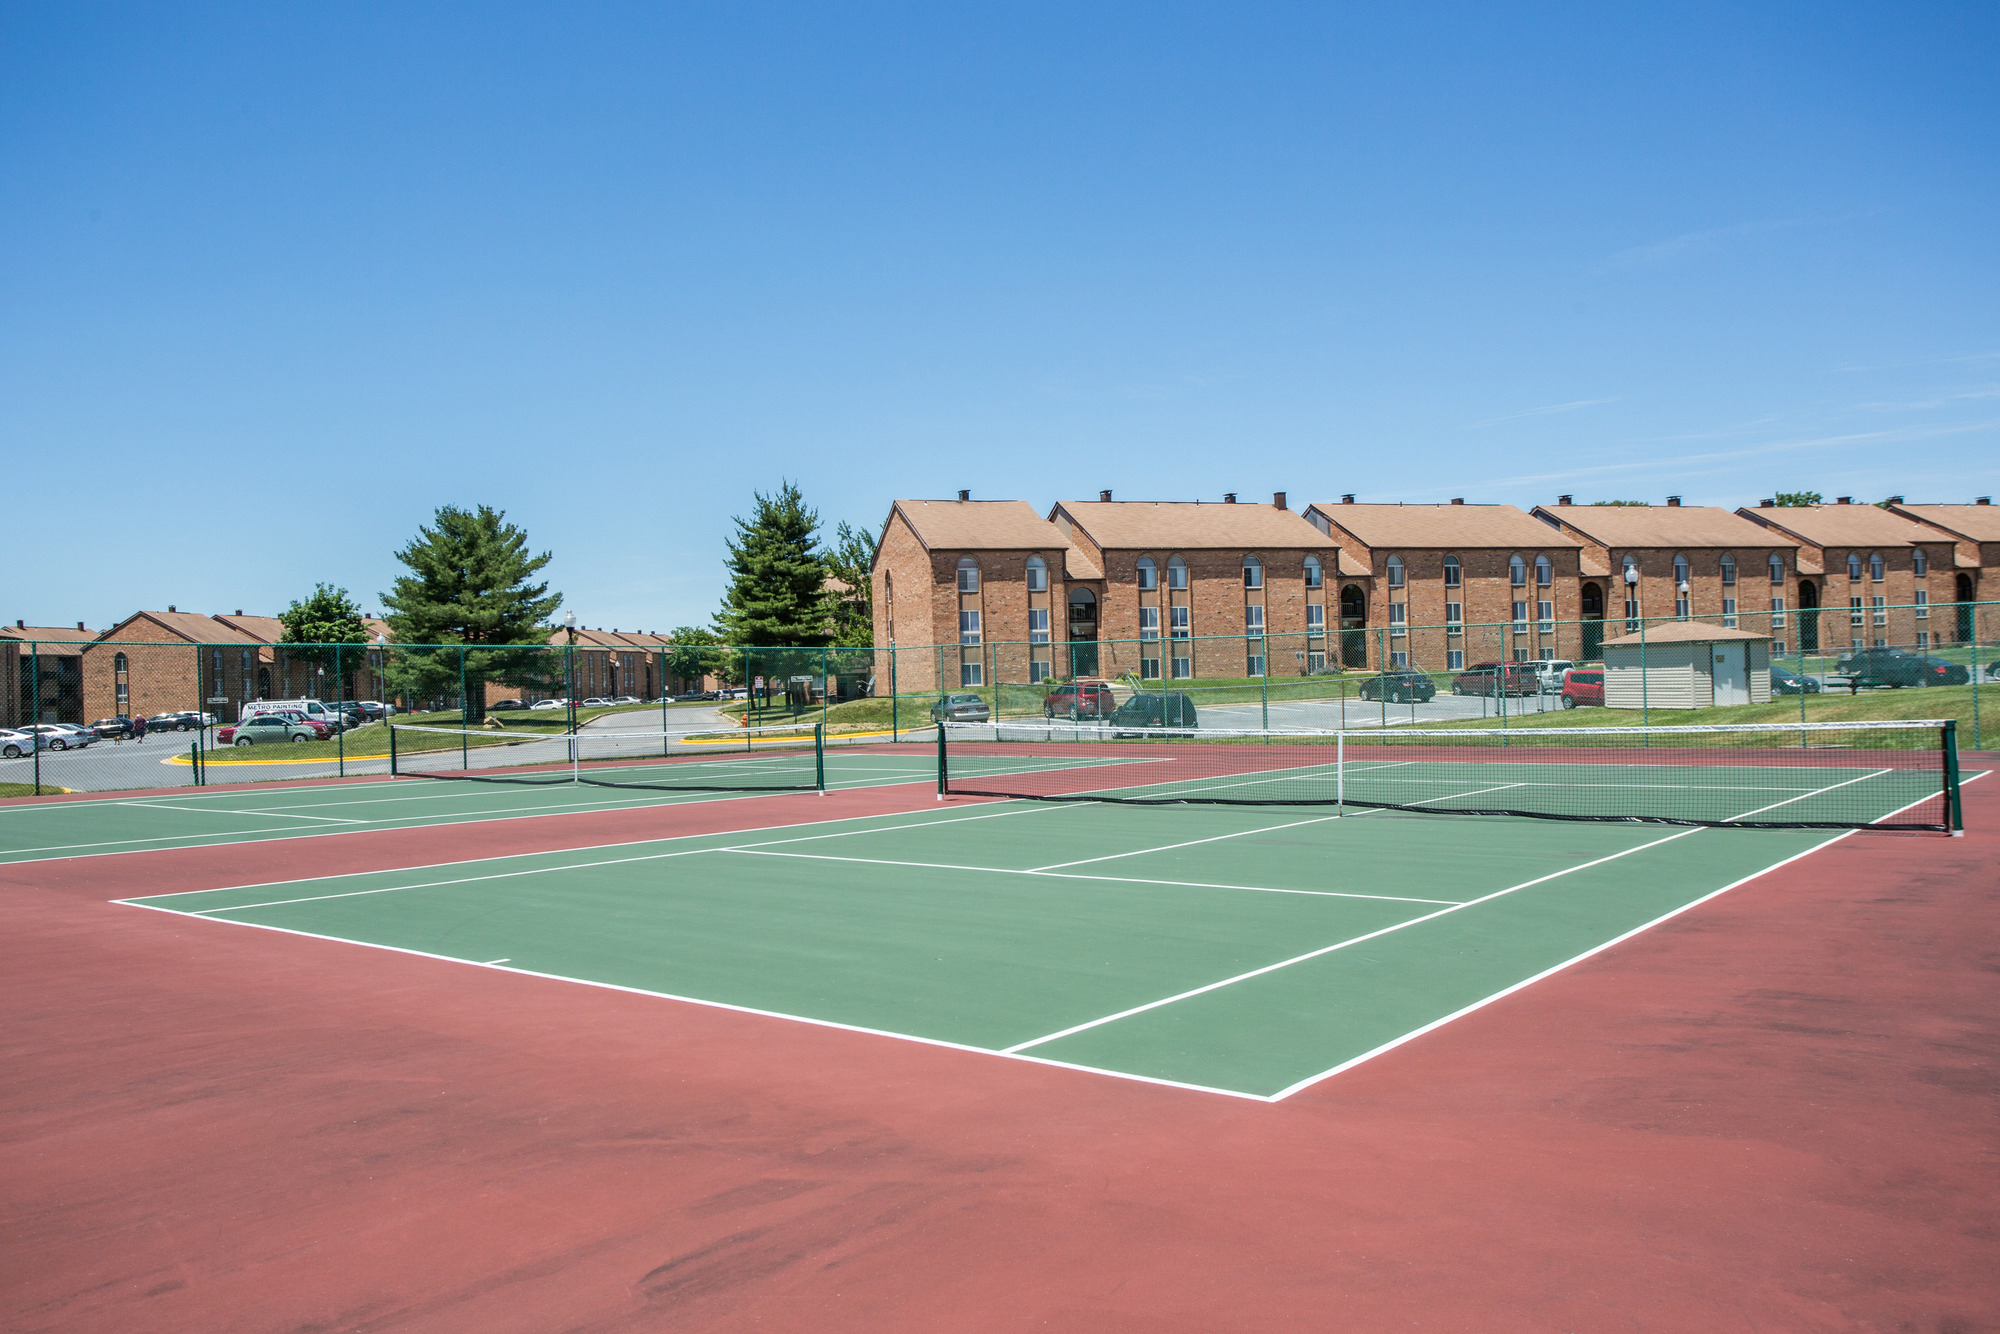 Tuscany Gardens Apartments in Windsor Mill, MD - Tennis Courts